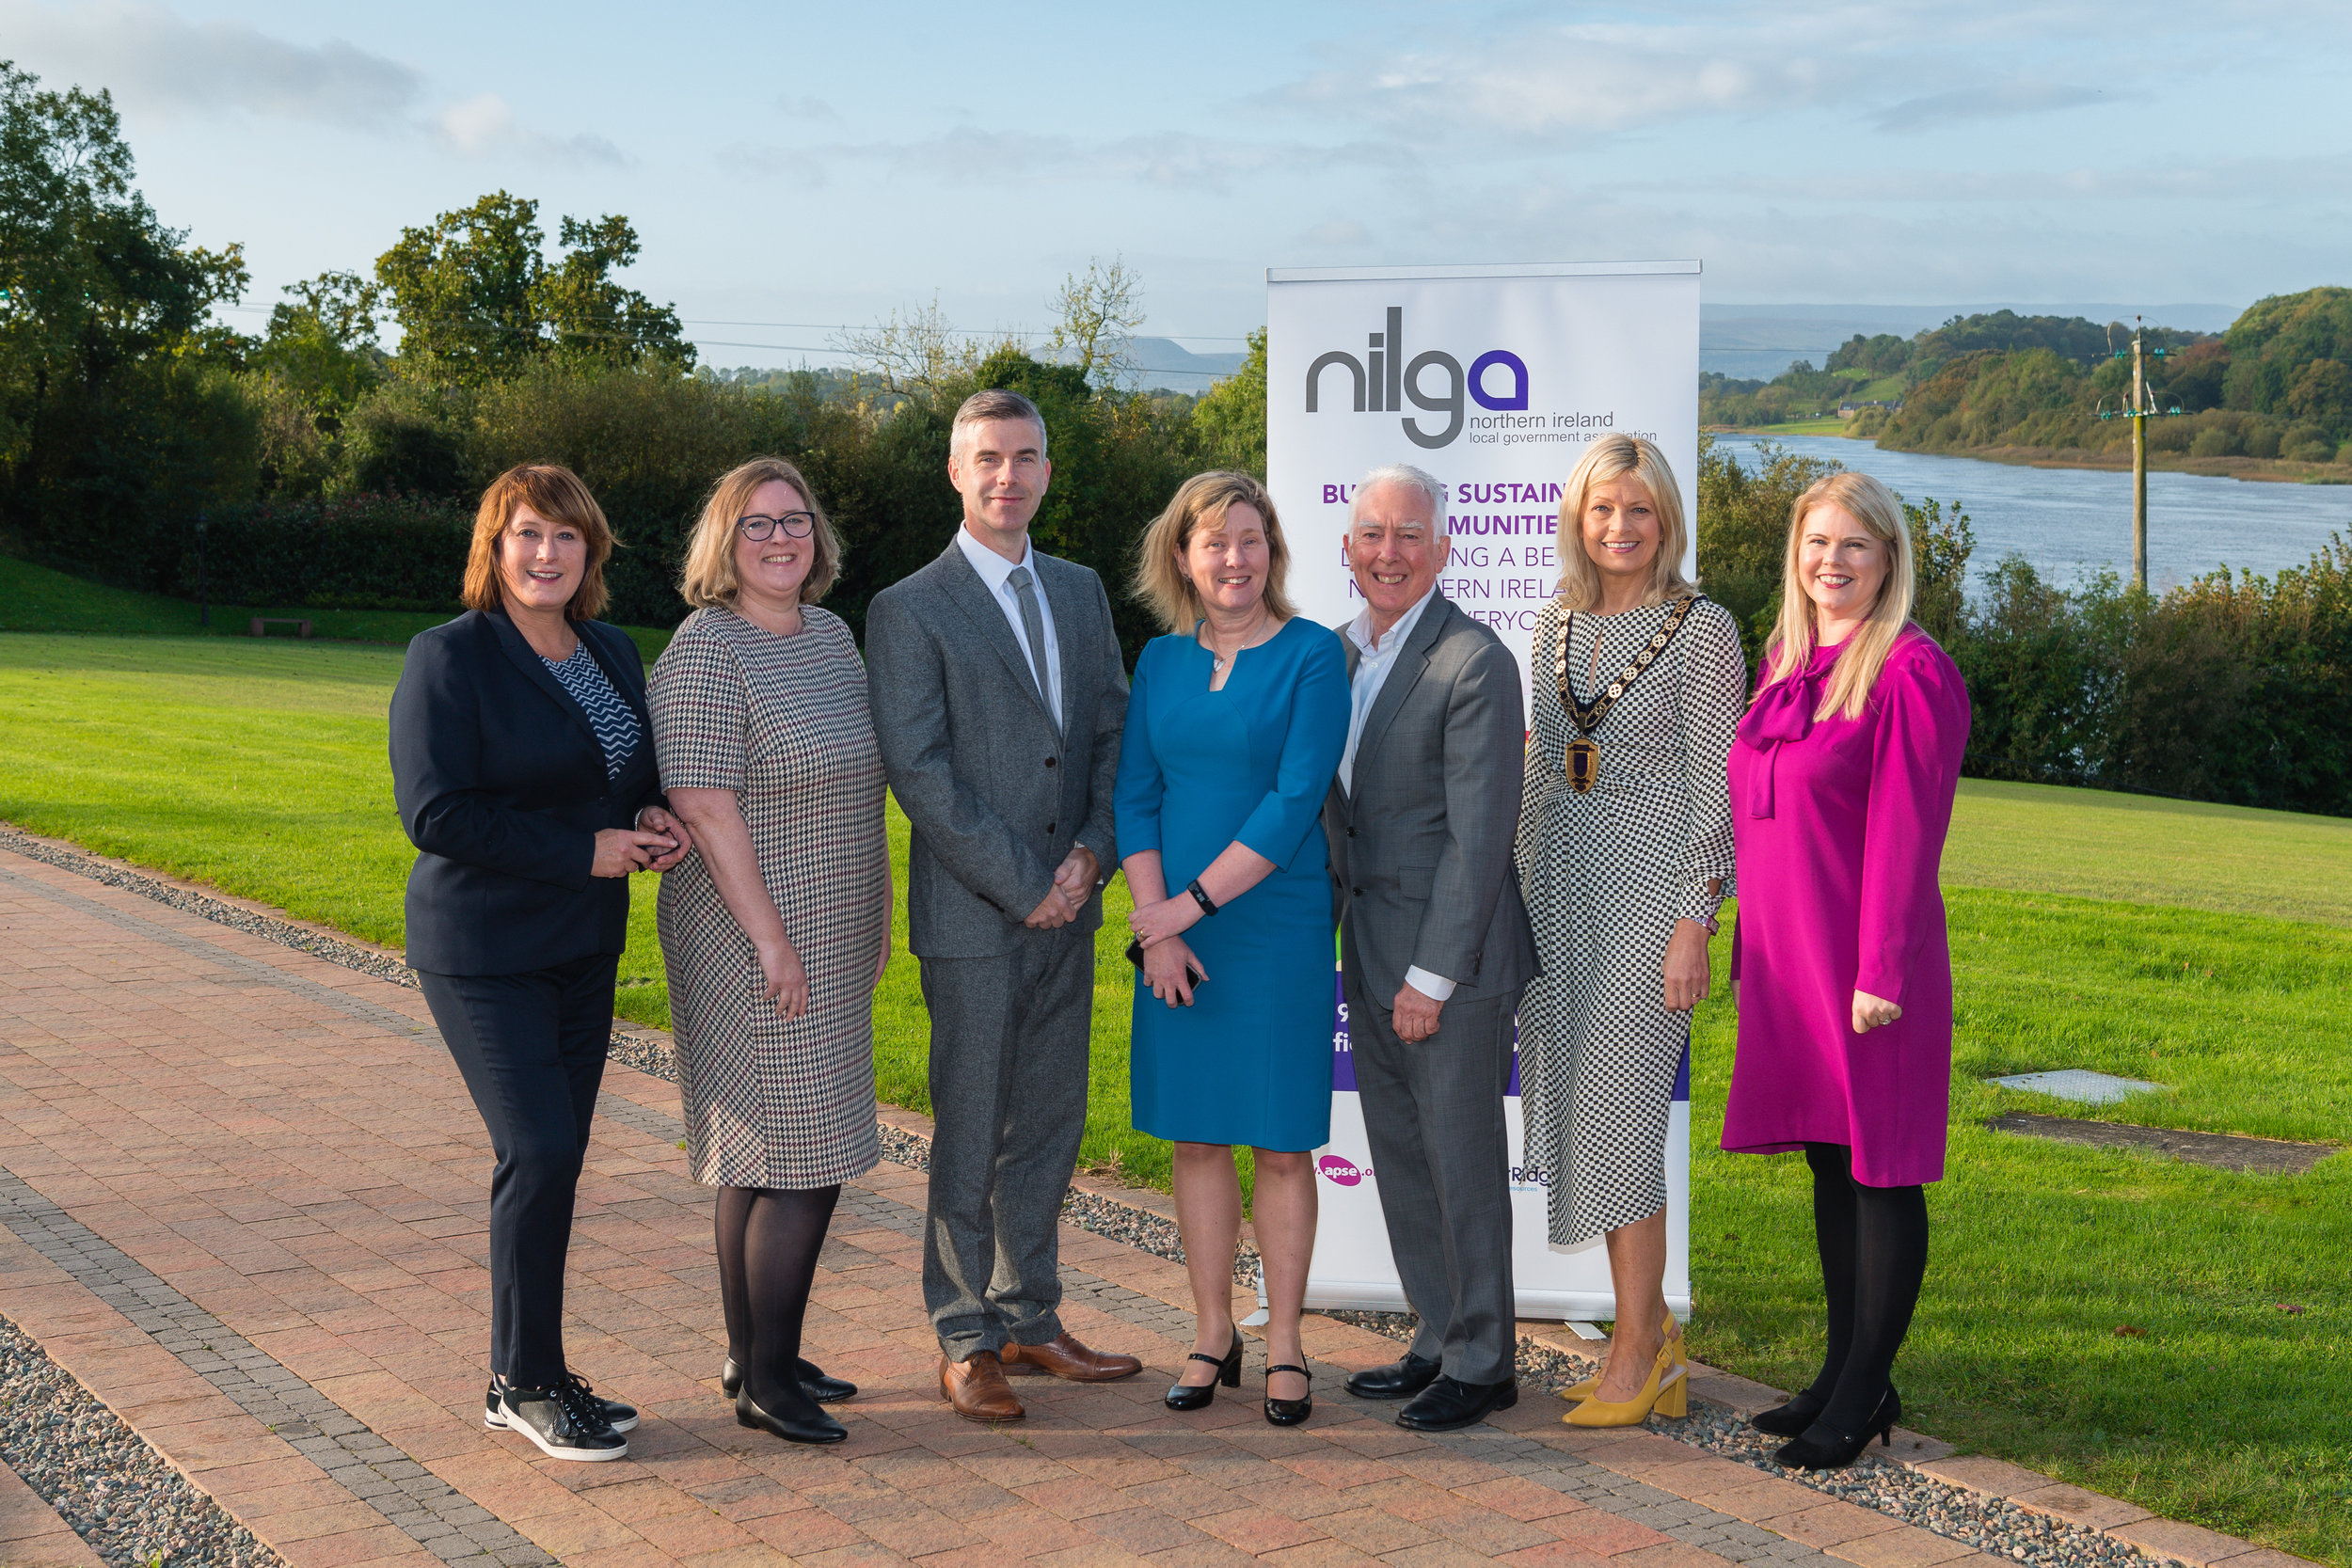 (Left to Right):   Host Yvette Shapiro, NILGA Head of Policy and Governance Karen Smyth, Cllr Steven Corr, Chair, NILGA Place Shaping and Infrastructure Network, Katrina Godfrey, Permanent Secretary, Department for Infrastructure, Prof Robin Hambleton, University of the West of England, Cllr Diana Armstrong, Vice-Chair, Fermanagh and Omagh District Council and Sara Venning, CEO, NI Water